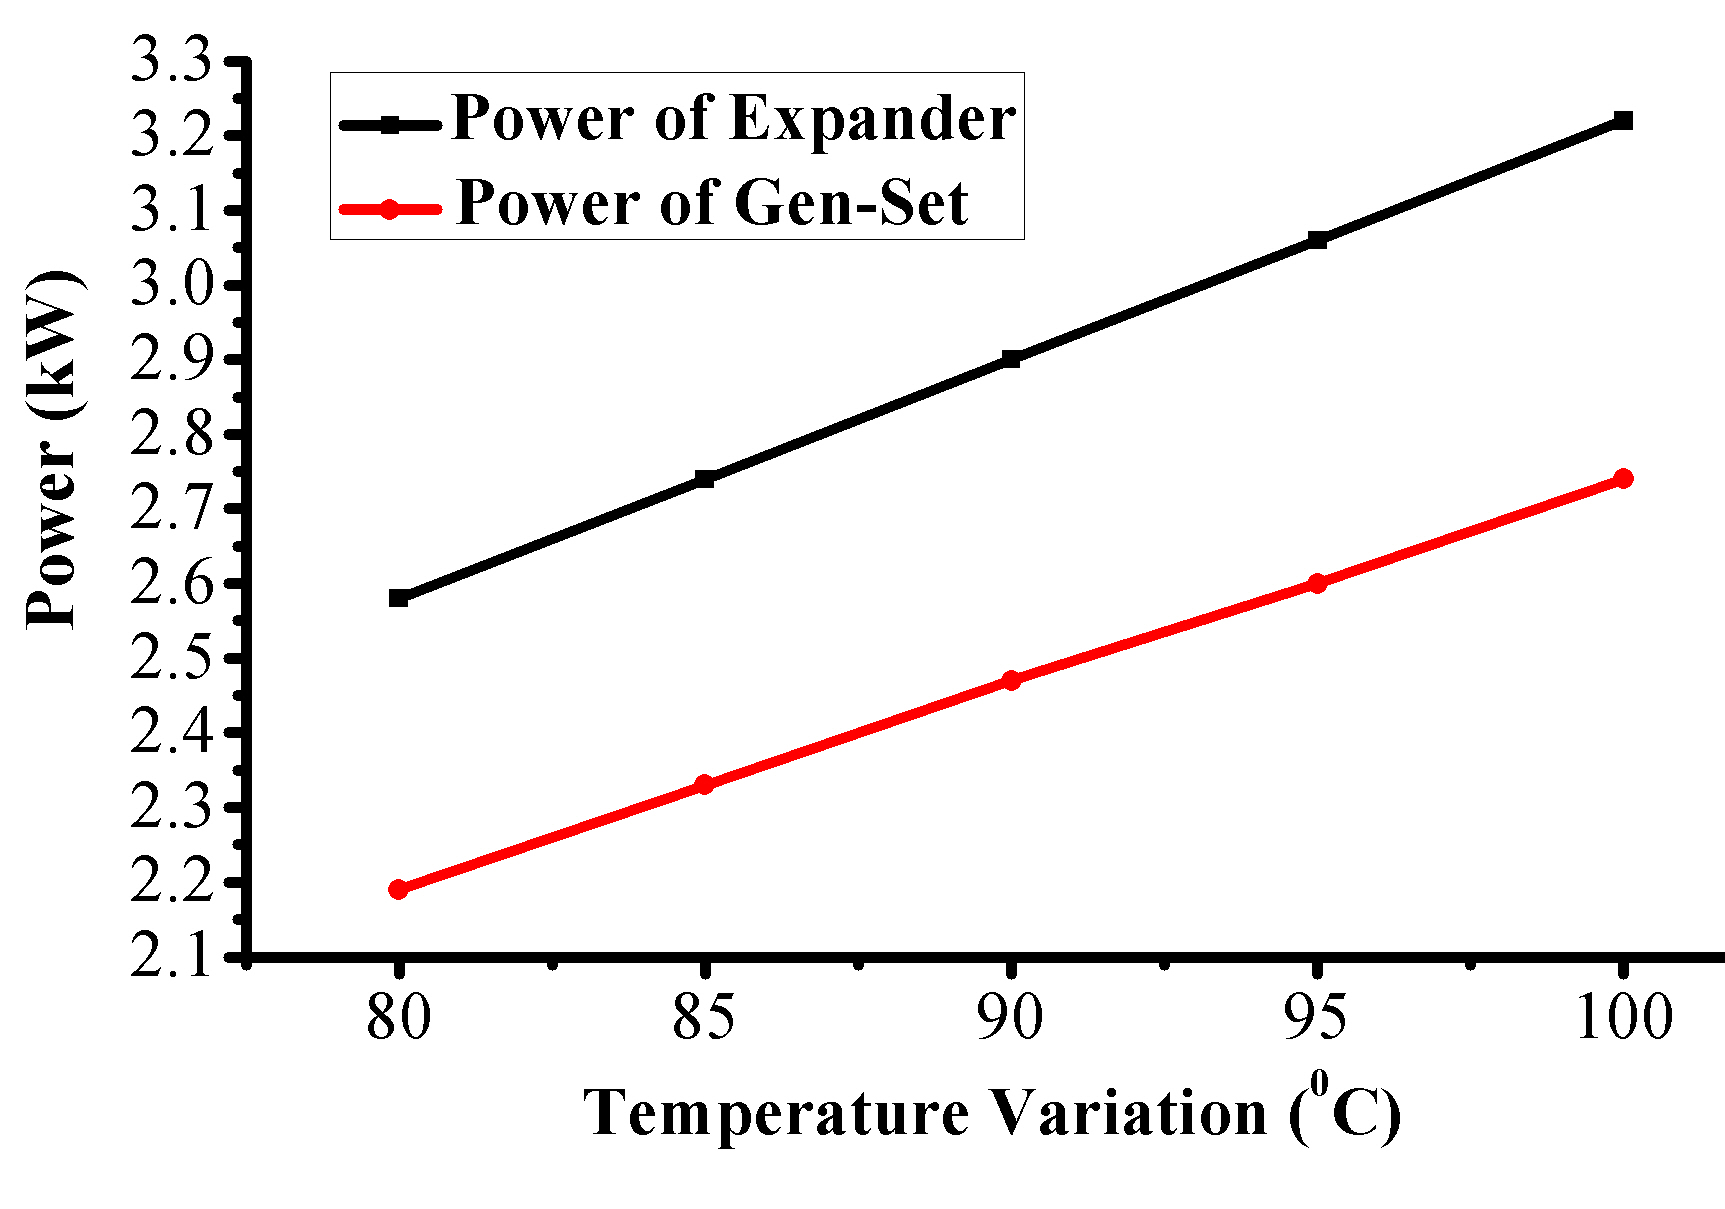 Cycle Tempo Power Simulation of the Variations in Heat Source Temperatures for an Organic Rankine Cycle Power Plant using R-134A Working Fluid